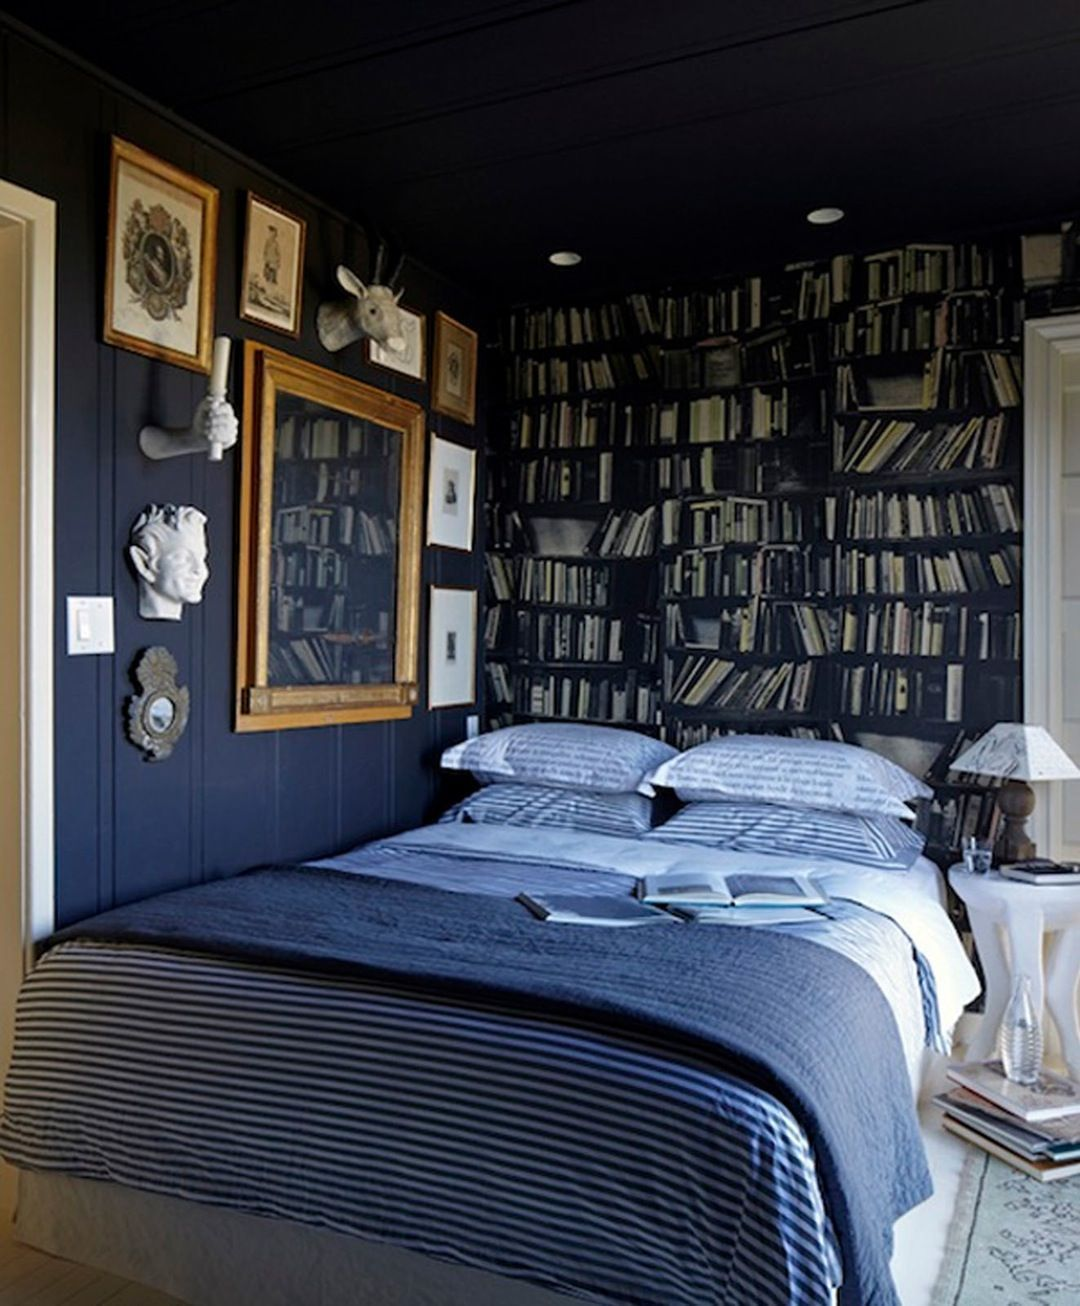 bedroom for couple decorating ideas. Bedroom Decoration For Newly Married Couple Decorating Ideas Iranews Small Bunk Beds E2 Home Couples Contemporary U